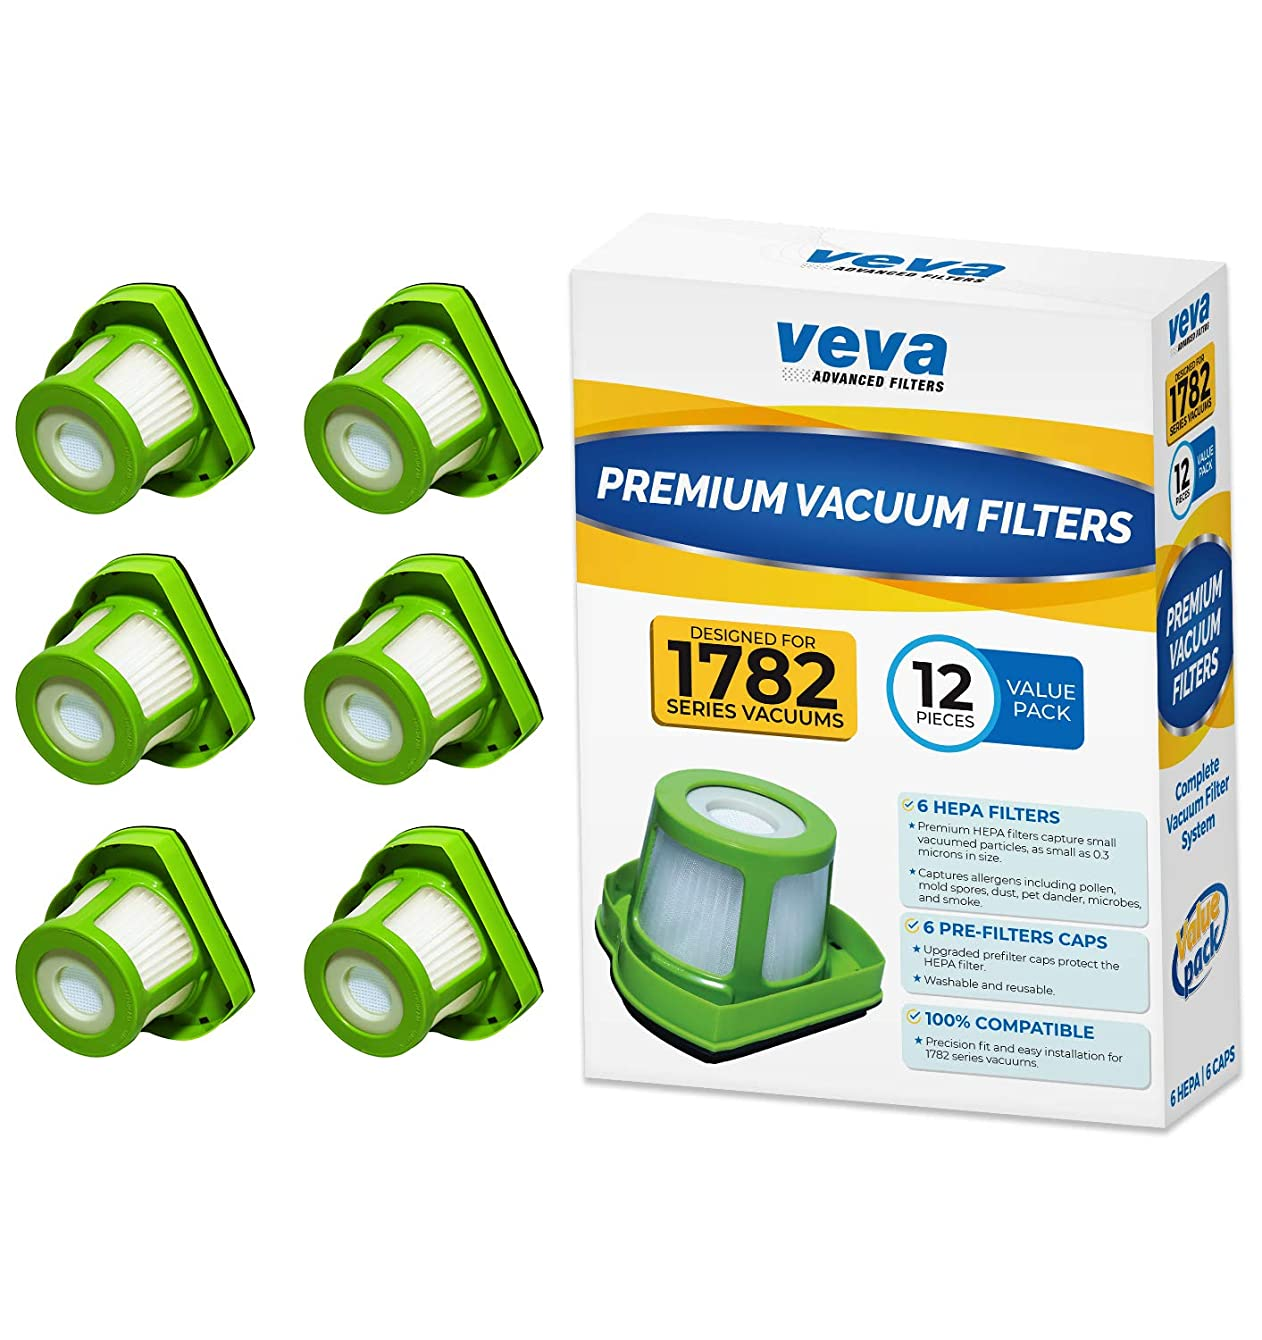 VEVA Premium Vacuum Filter Set with 12 Pieces Total of 6 HEPA Filters and 6 Covers Compatible with Bissell 1782 Pet Hair Eraser Cordless Hand Vac, Part # 1608653 & 1608654